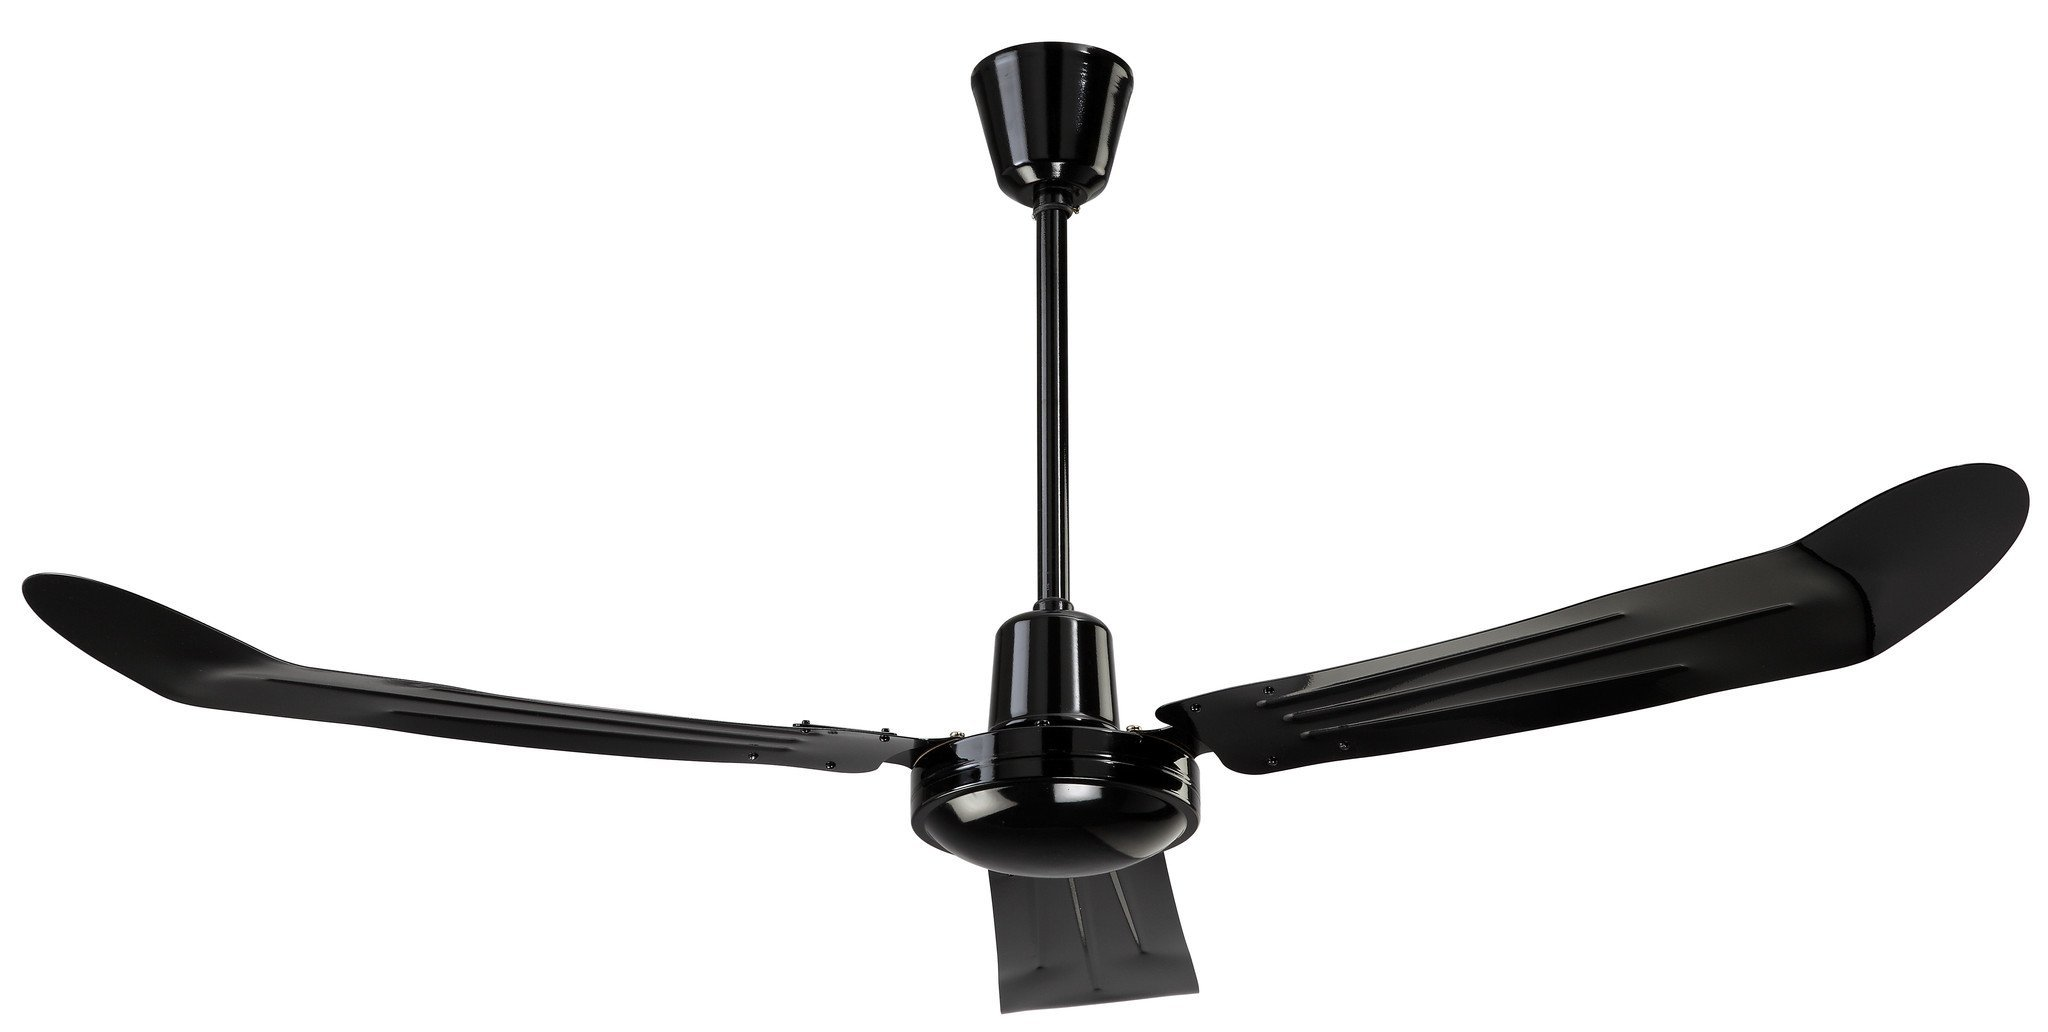 Canarm Variable Speed & Reversible 56 Inch Black Commercial Ceiling Fan 20500 CFM CP56FRBK